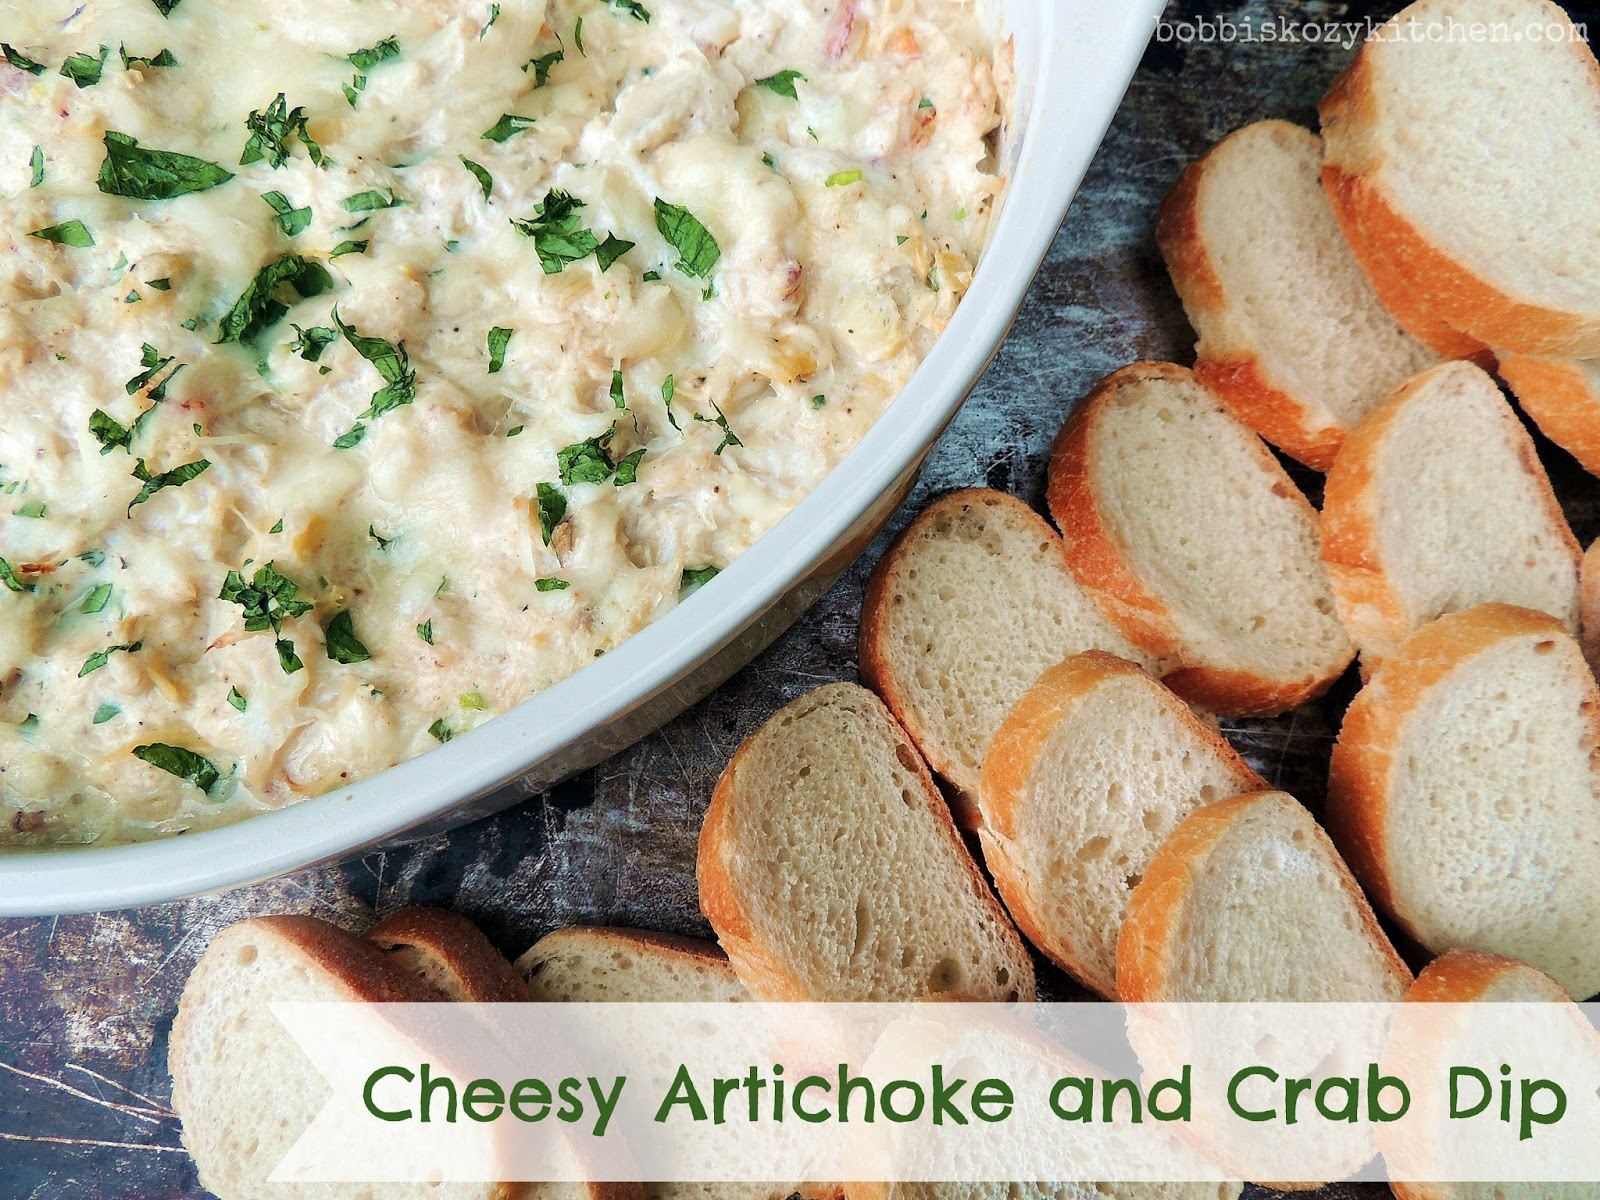 If you are looking for an appetizer that is sure to impress, this Cheesy Artichoke Crab Dip is it. Warm and cheesy, with tender artichoke hearts and luscious crab, your guests will be fighting for the last bite! From www.bobbiskozykitchen.com #appetizer, #crab #dip